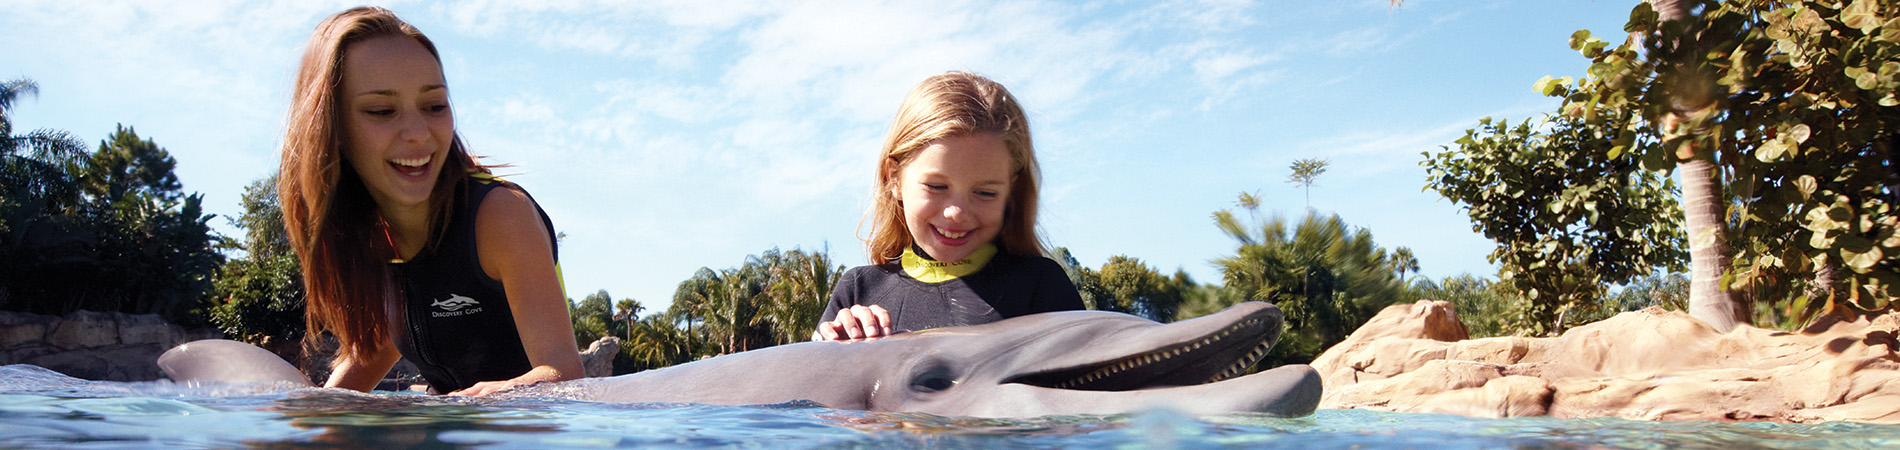 Accessibility at Discovery Cove Orlando